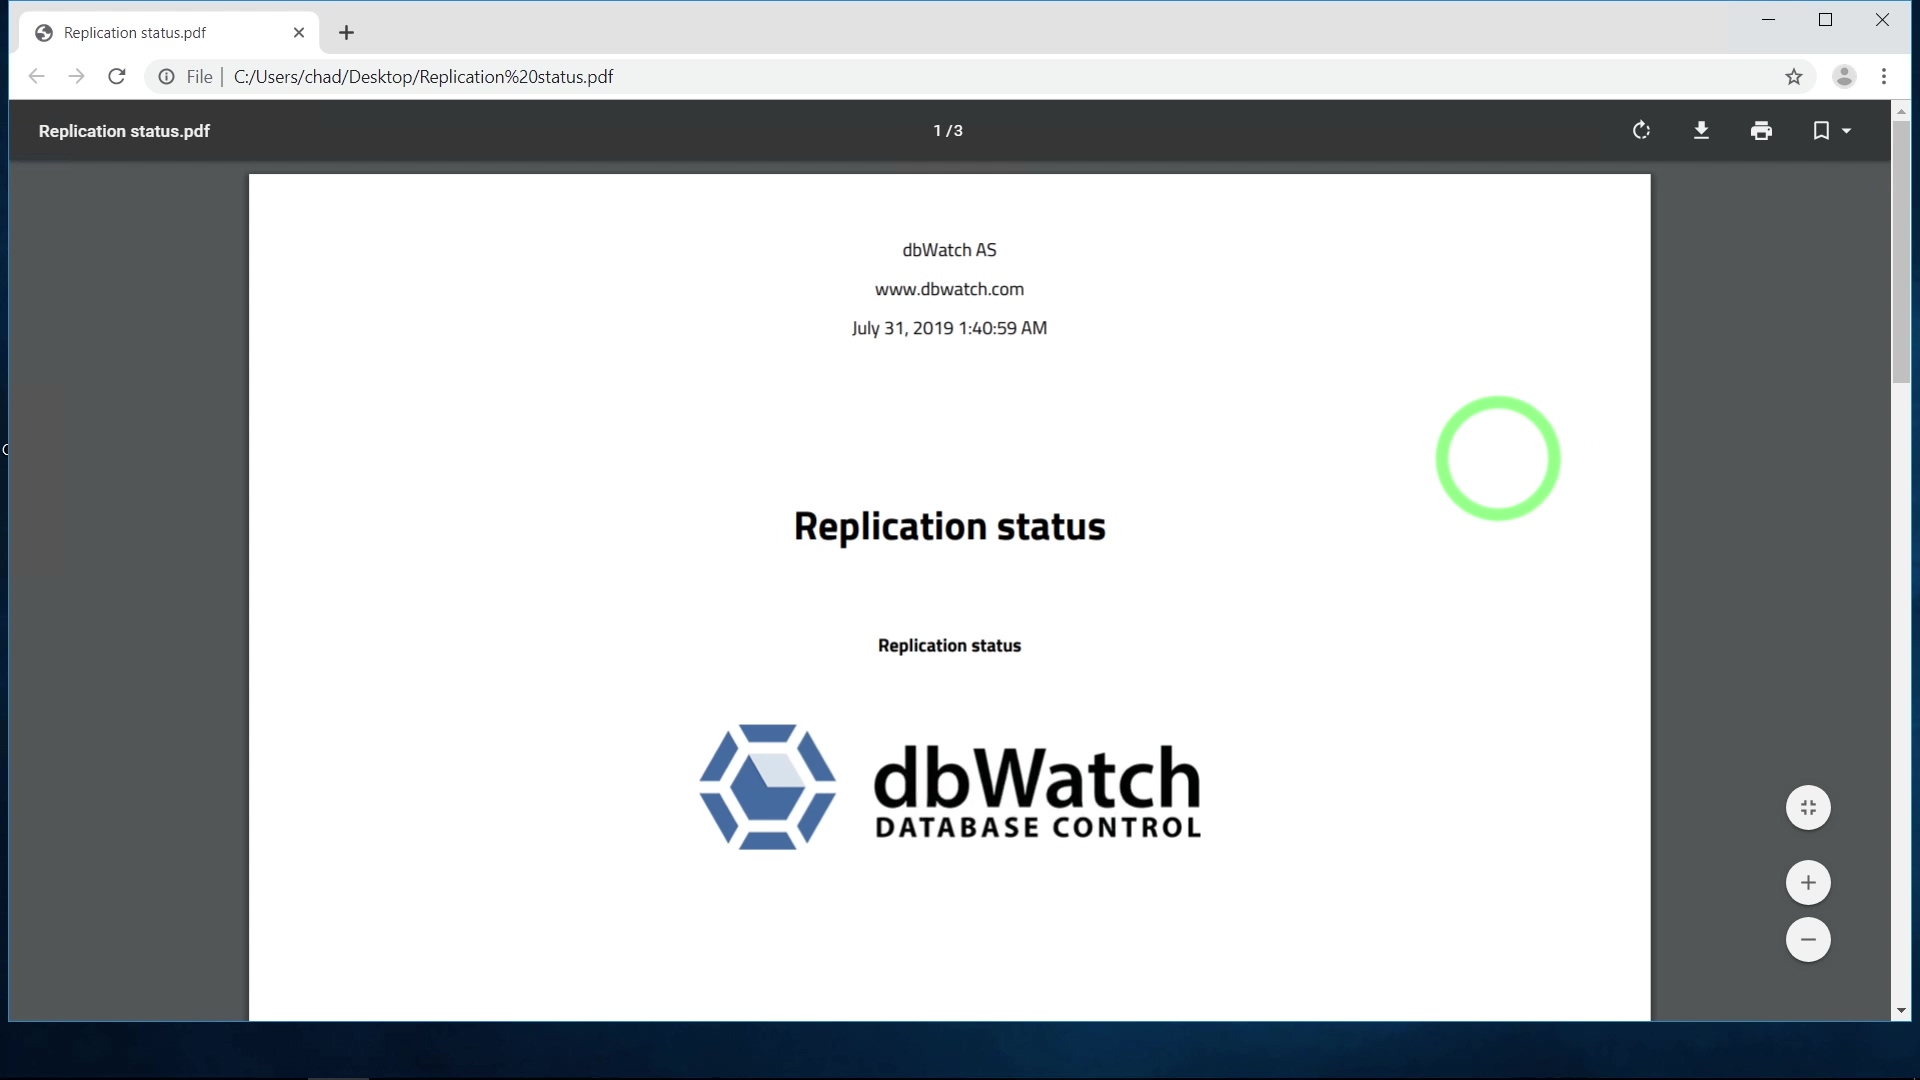 dbWatch Episode 8 July 30 2019